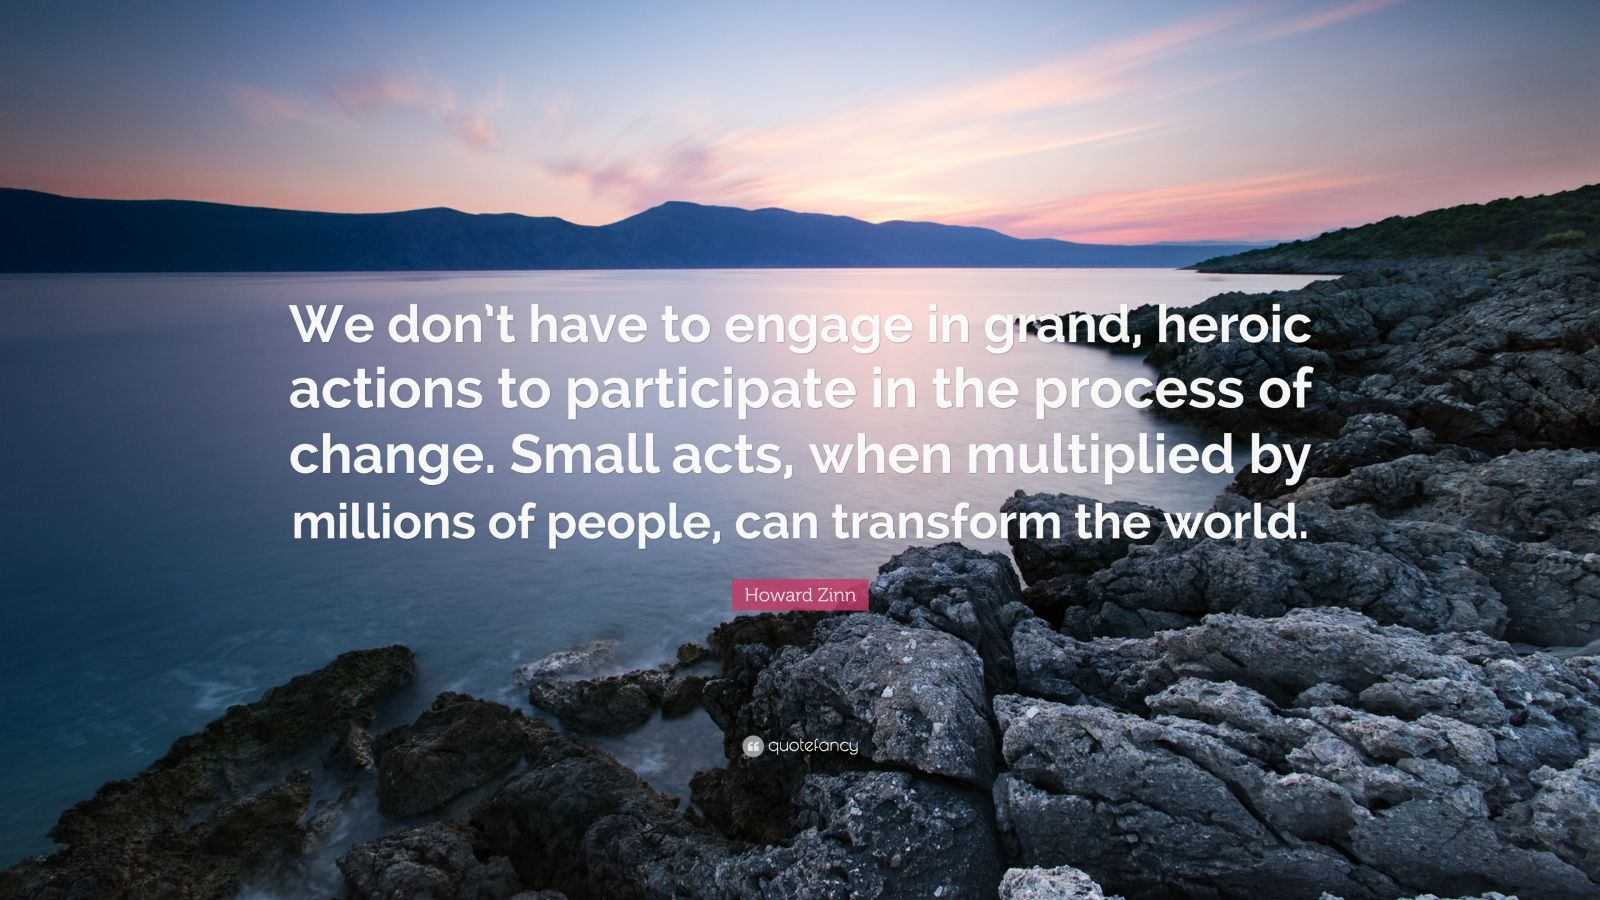 """Howard Zinn Quote: """"We don't have to engage in grand, heroic actions to participate in the process of change. Small acts, when multiplied by millions of people, can transform the world."""""""